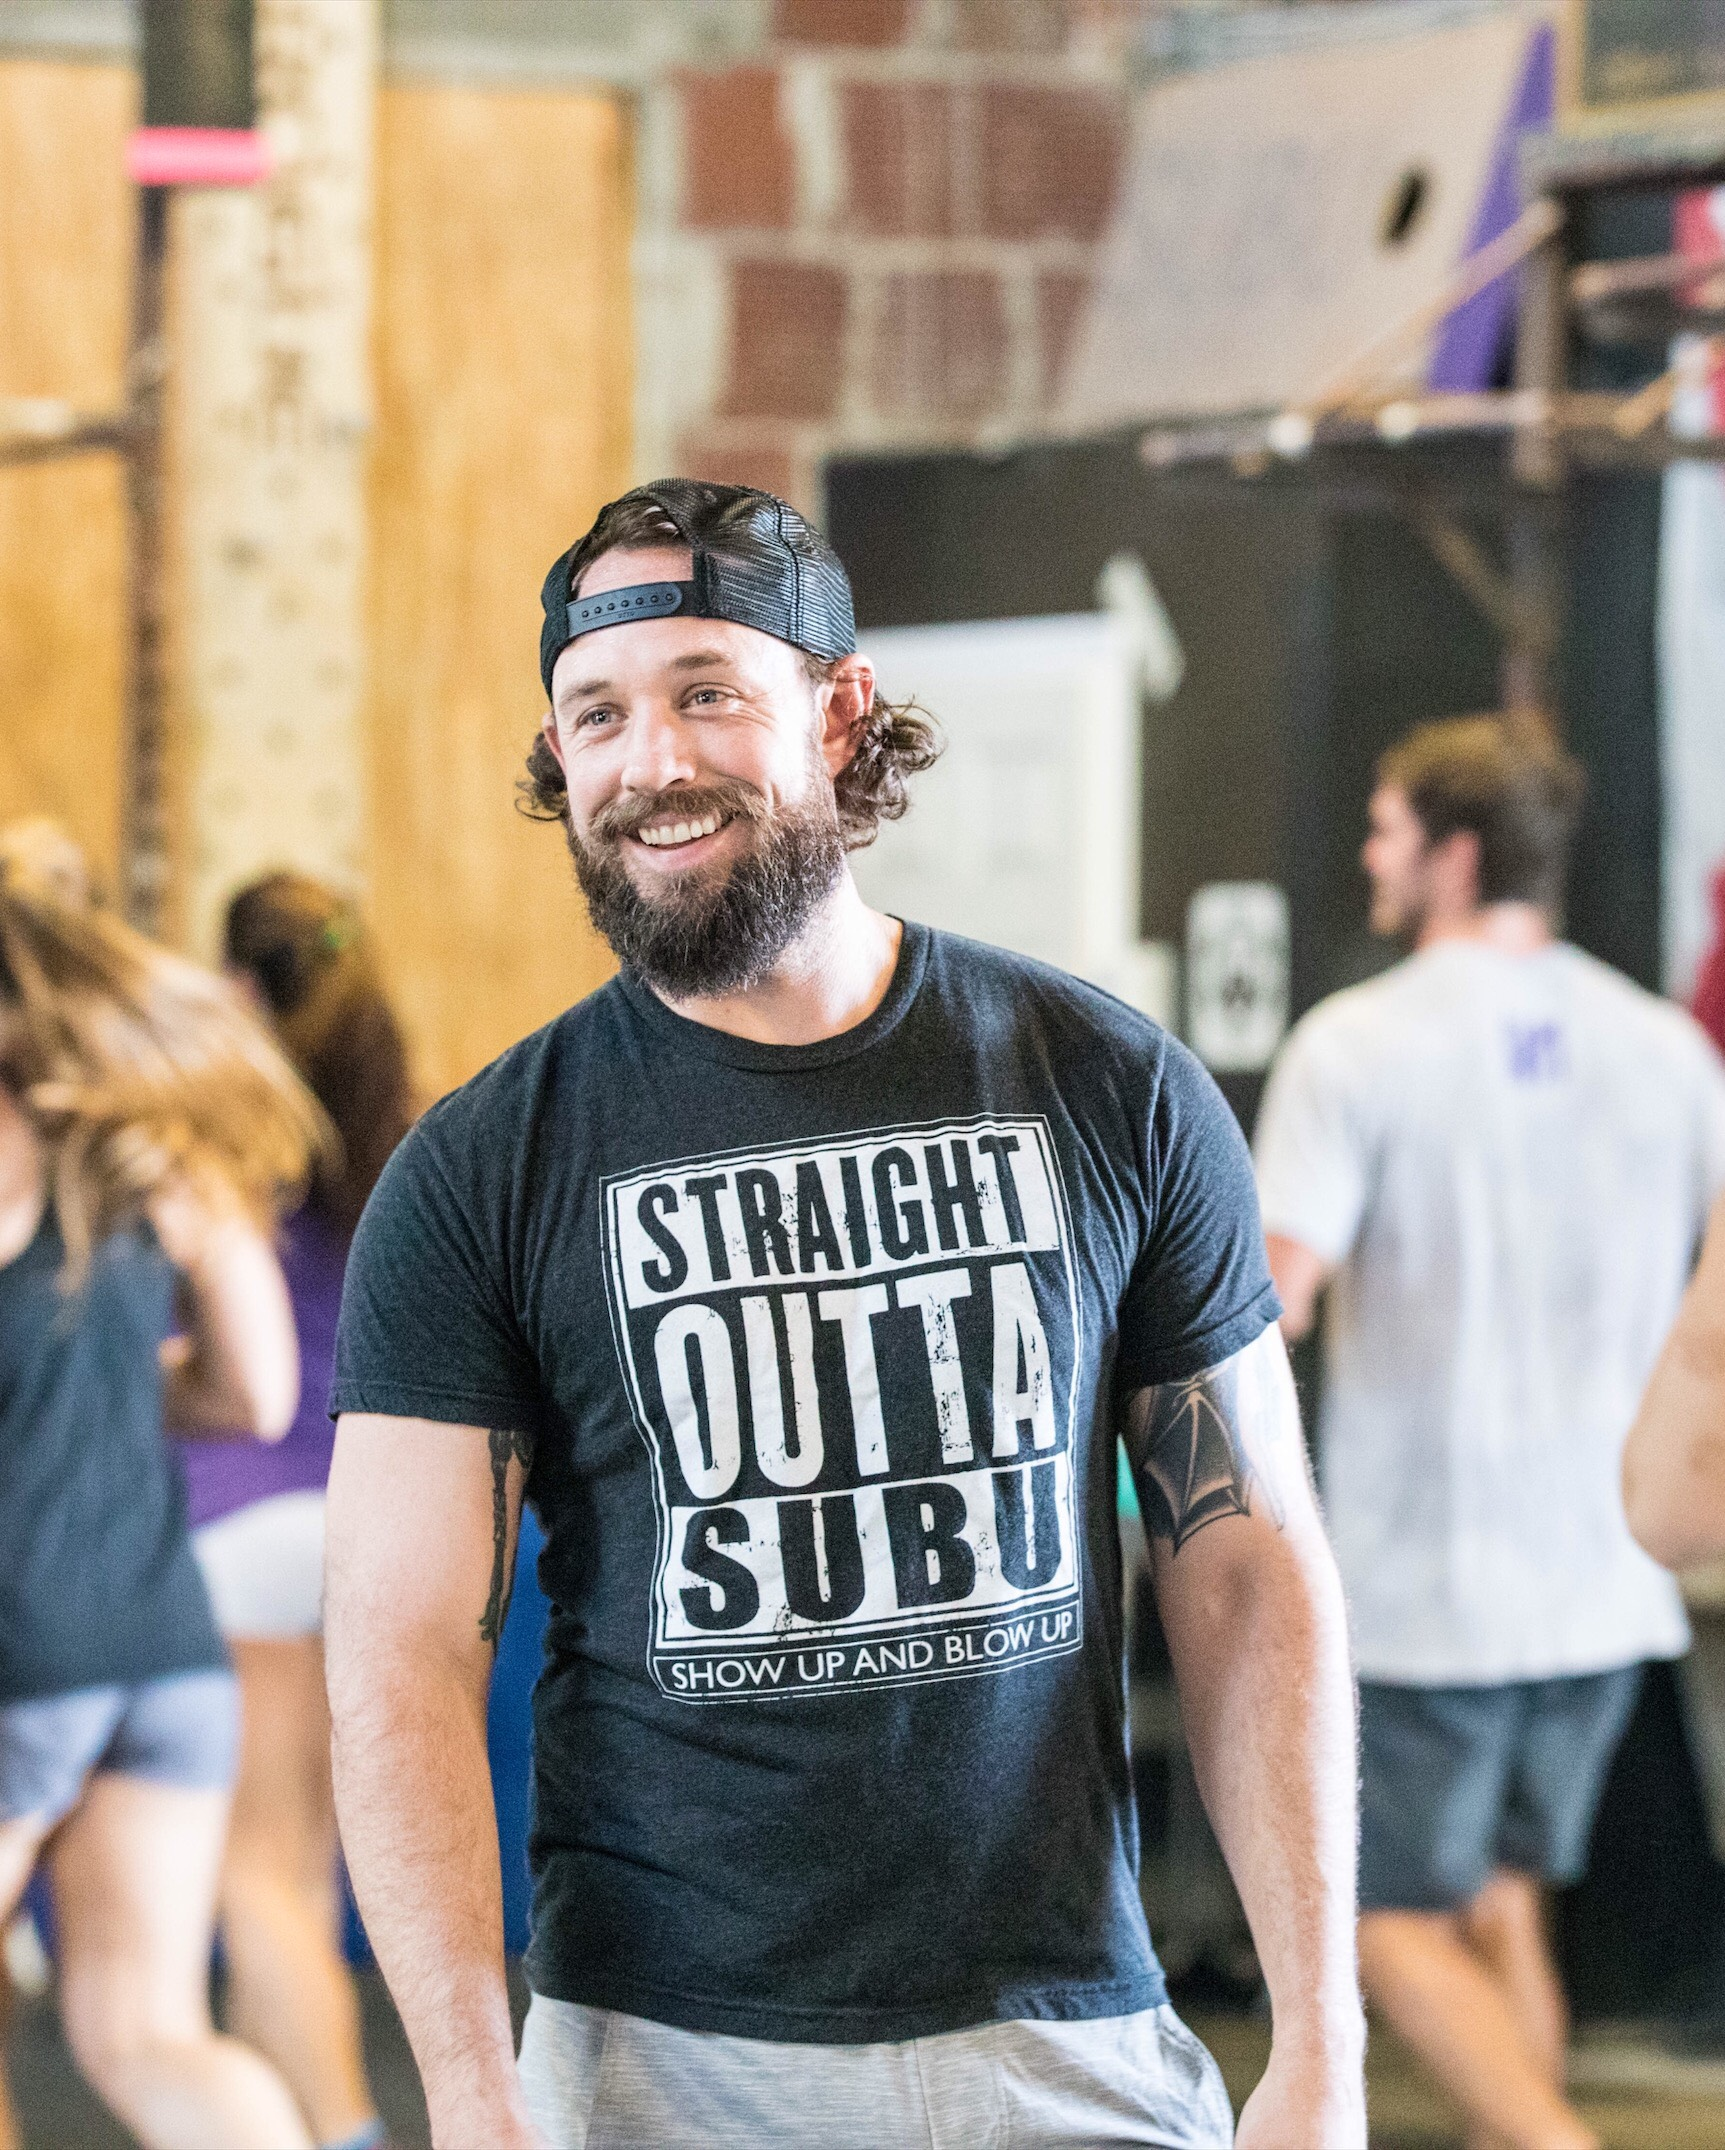 Chris Belcher    CrossFit Level 1    Favorite Lift:  The Snatch   Favorite Movement:  The Muscle Up   Favorite WOD:  Viking Raid   Favorite Restaurant in Orlando:  Pizza Bruno   Favorite Way to Spend a Rest Day:  At the beach, and/or with some beers, and/or with the guitar